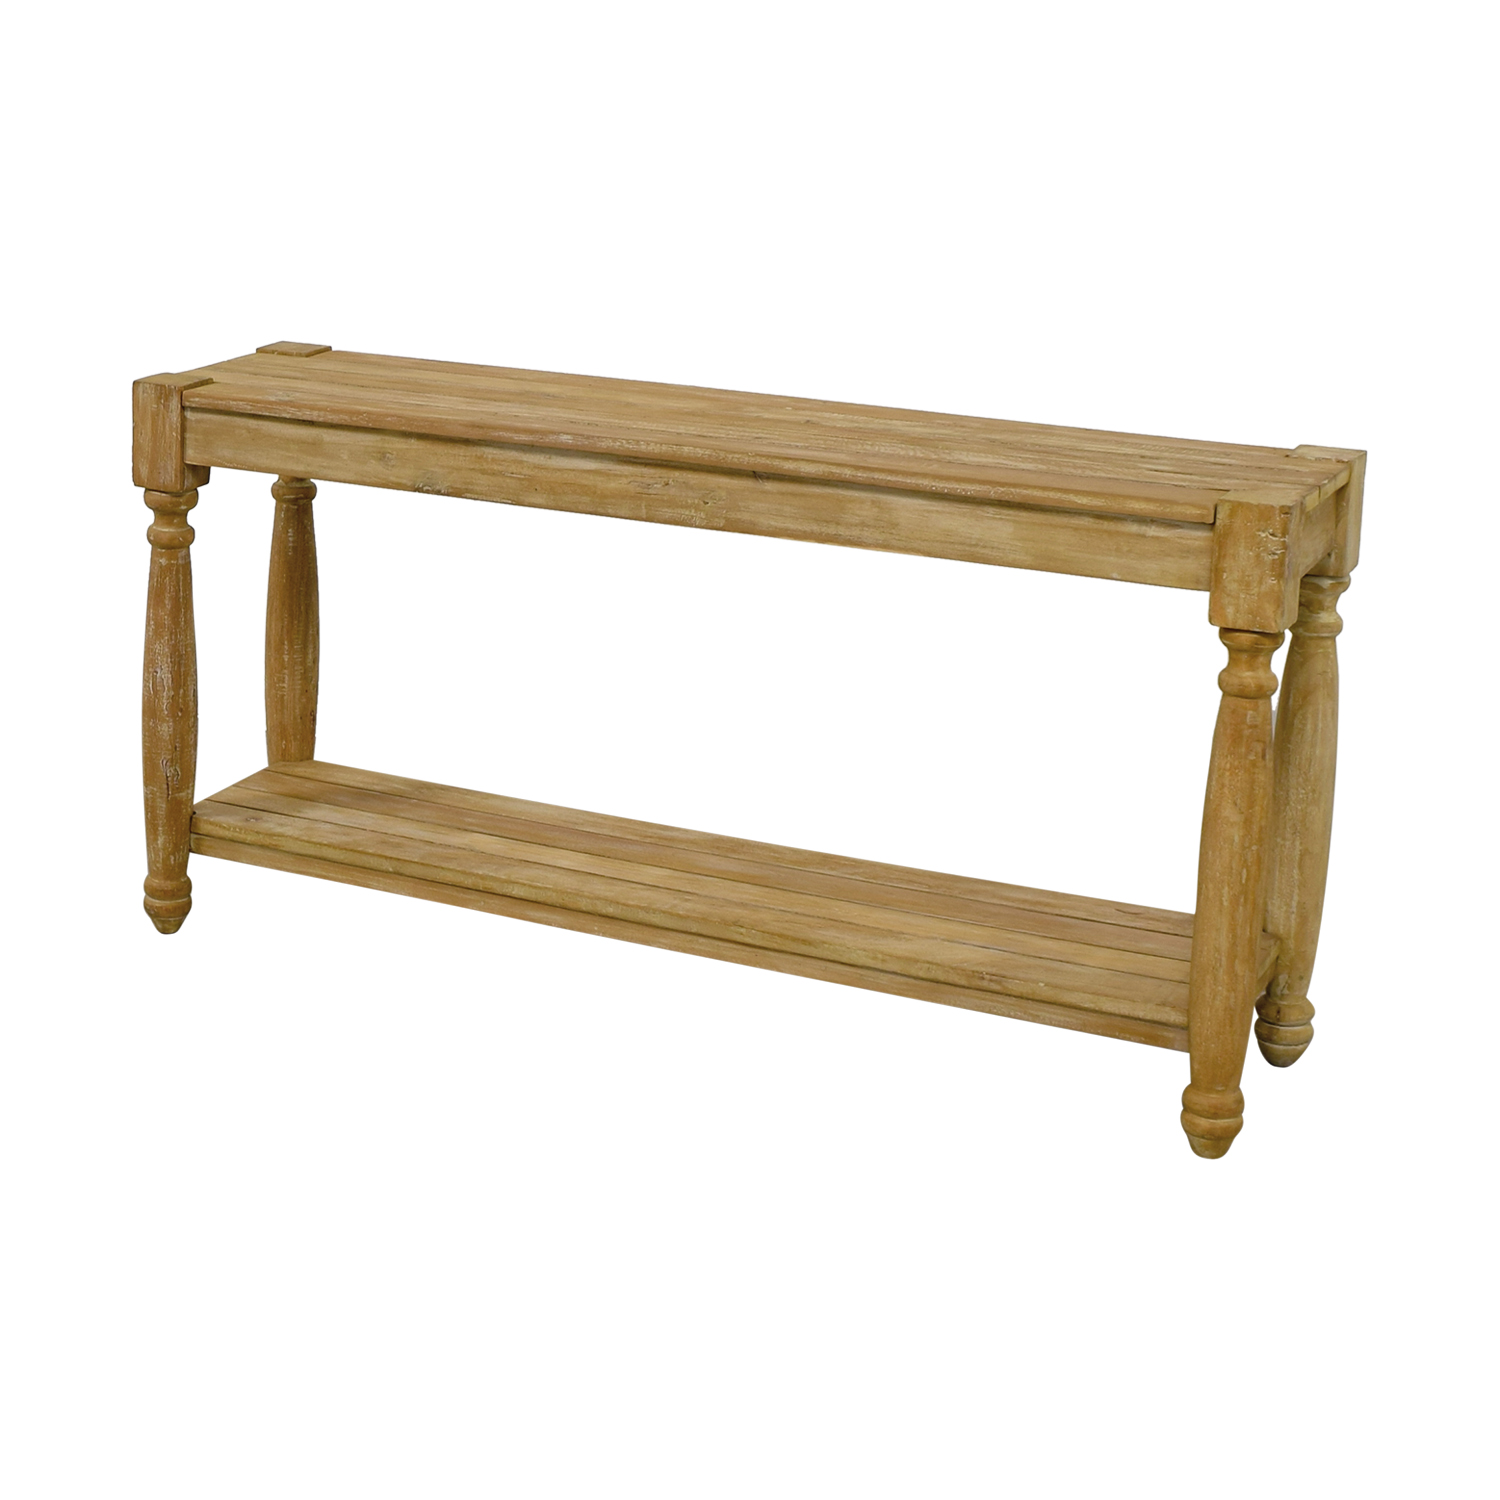 76 Off Homegoods Homegoods Natural Wood Console Table Tables